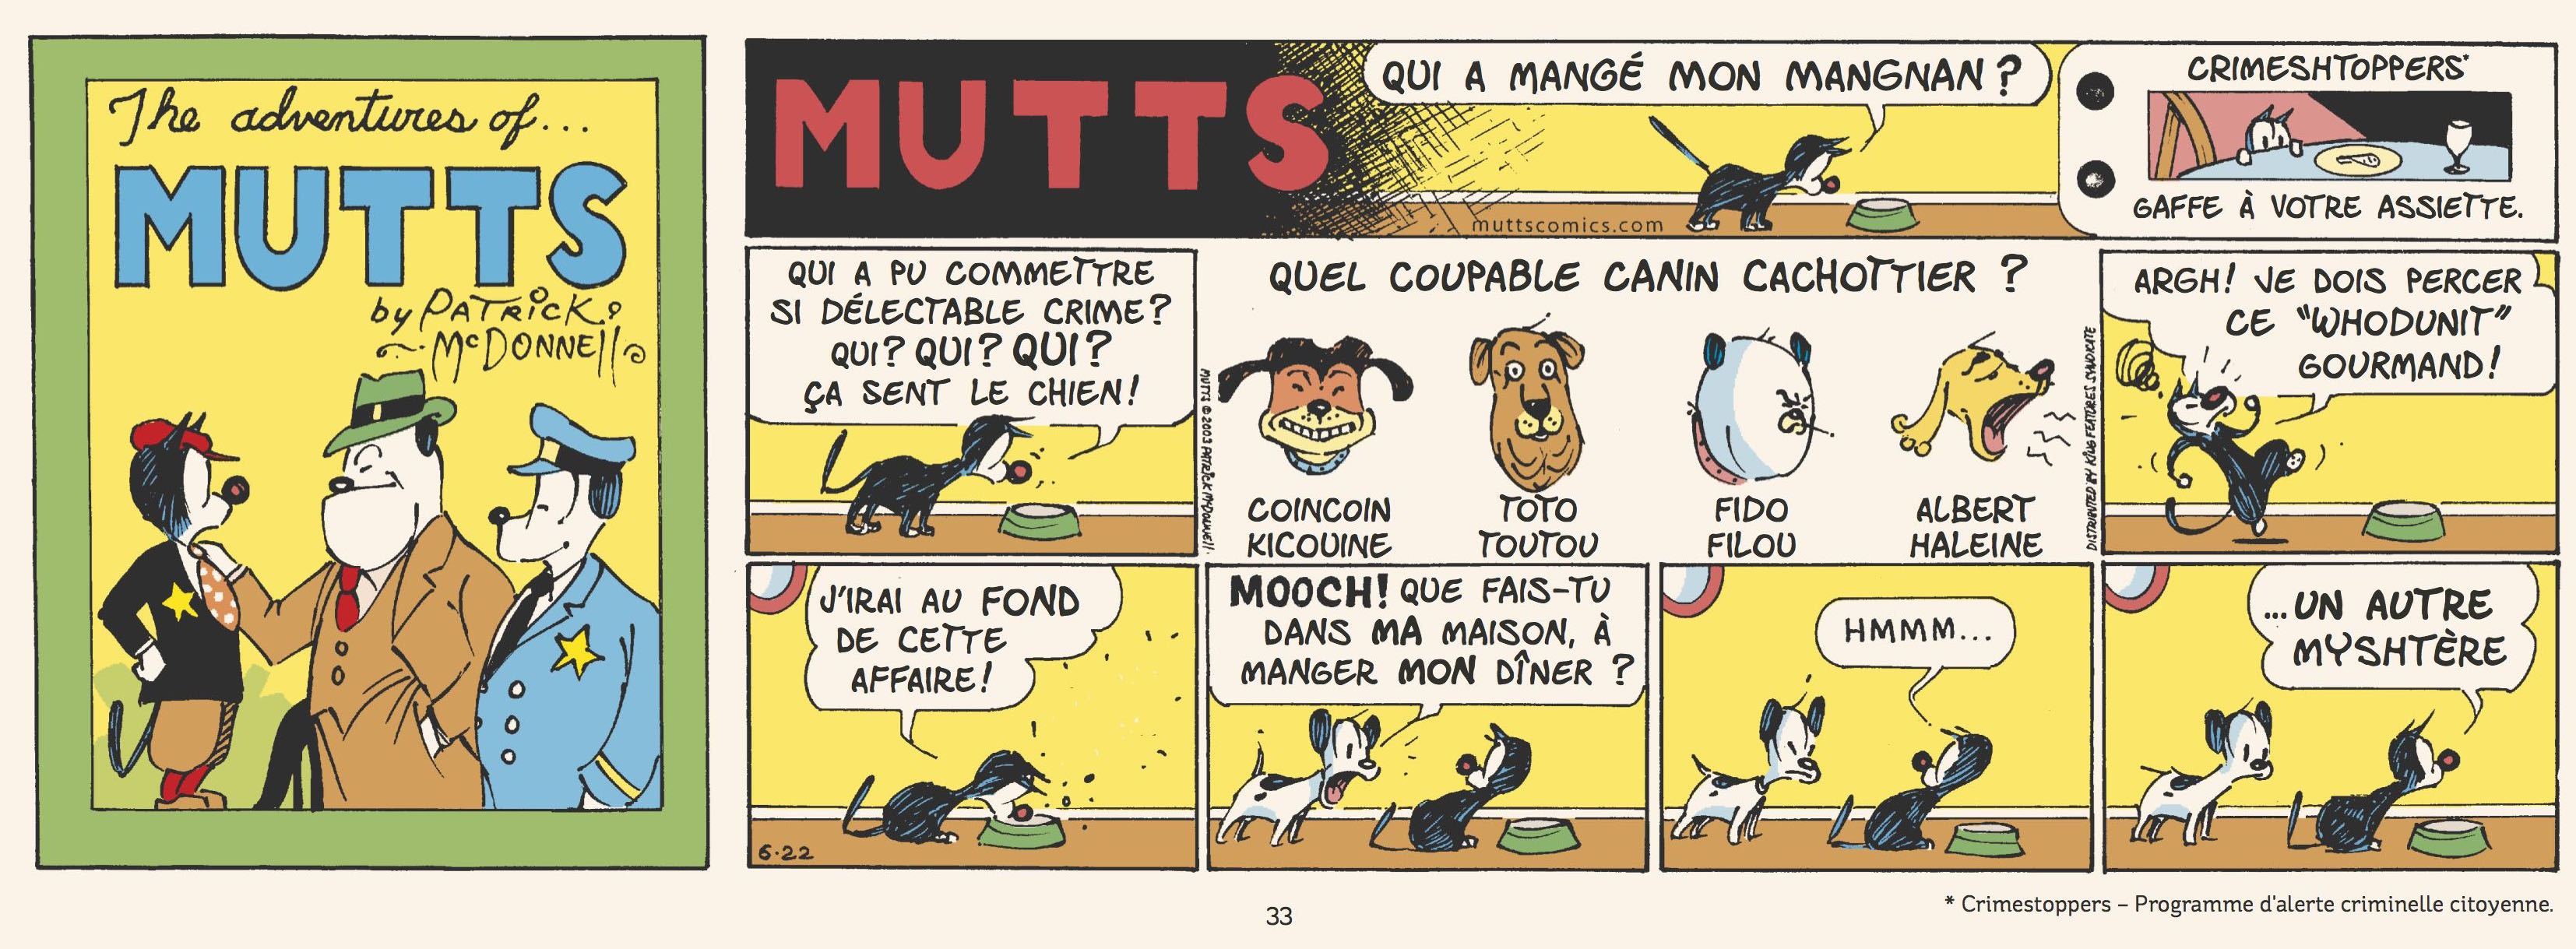 INT_MUTTS-03_33